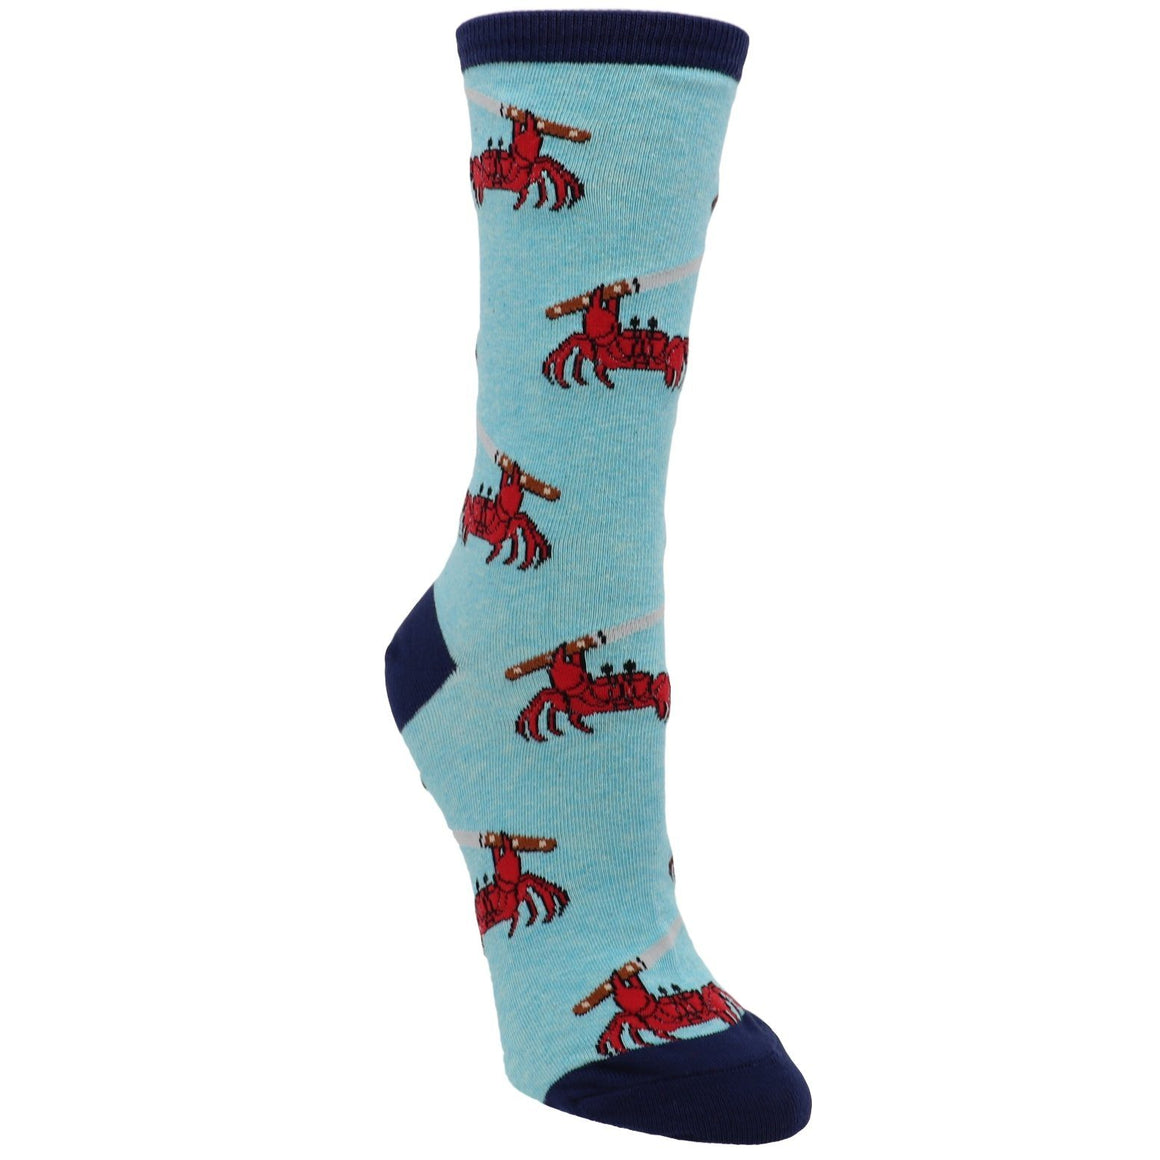 Feeling Crabby in Blue Women's Socks by SockSmith - The Sock Spot